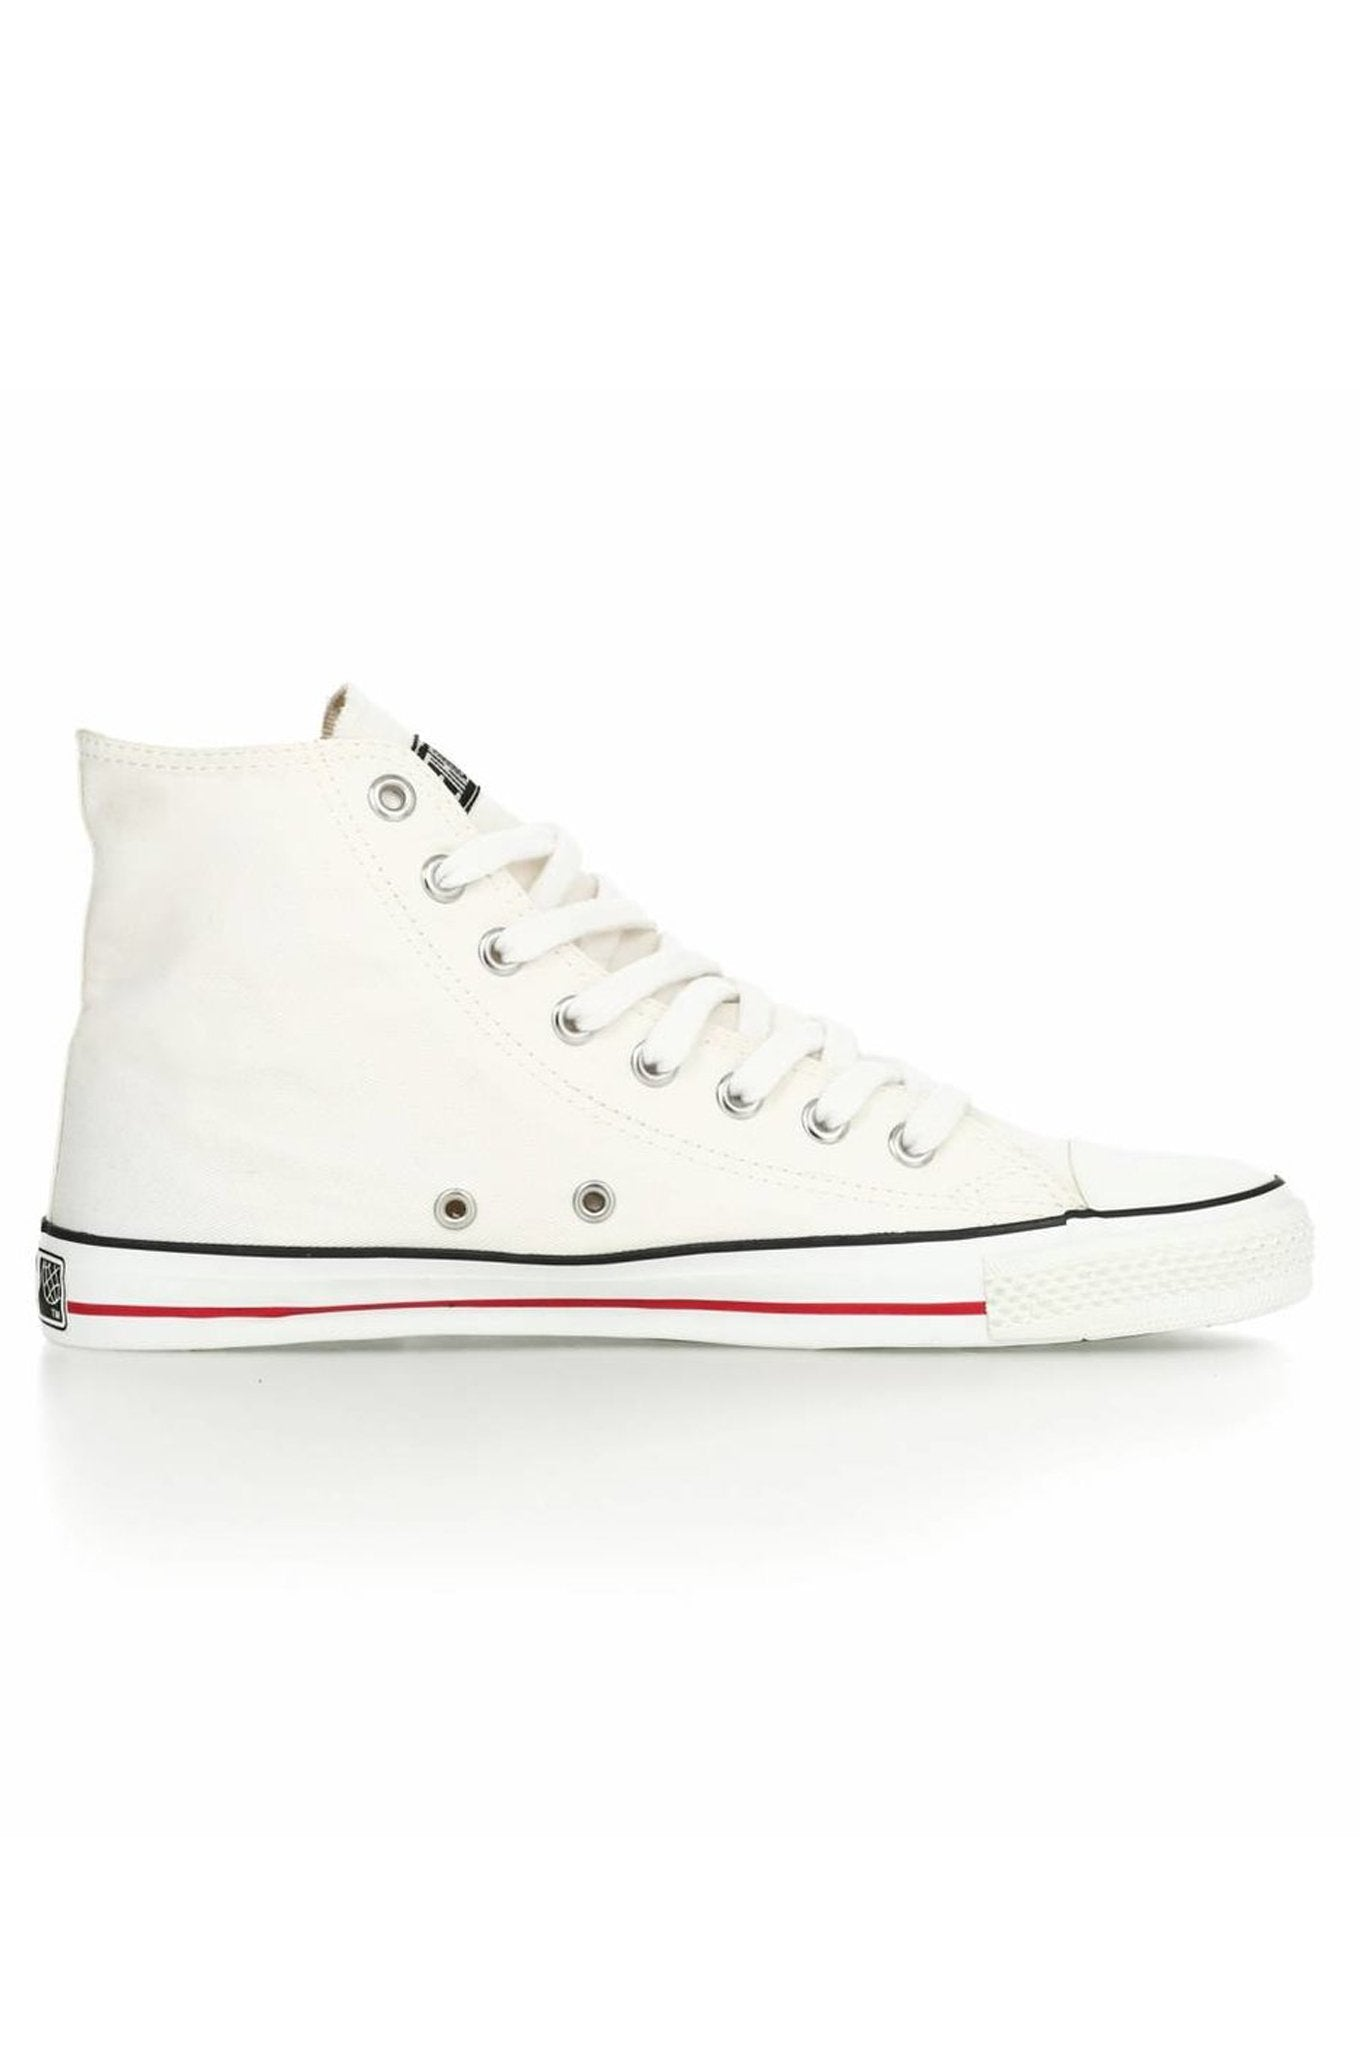 HI TOP CLASSIC Sneaker White by Ethletic - Komodo Fashion